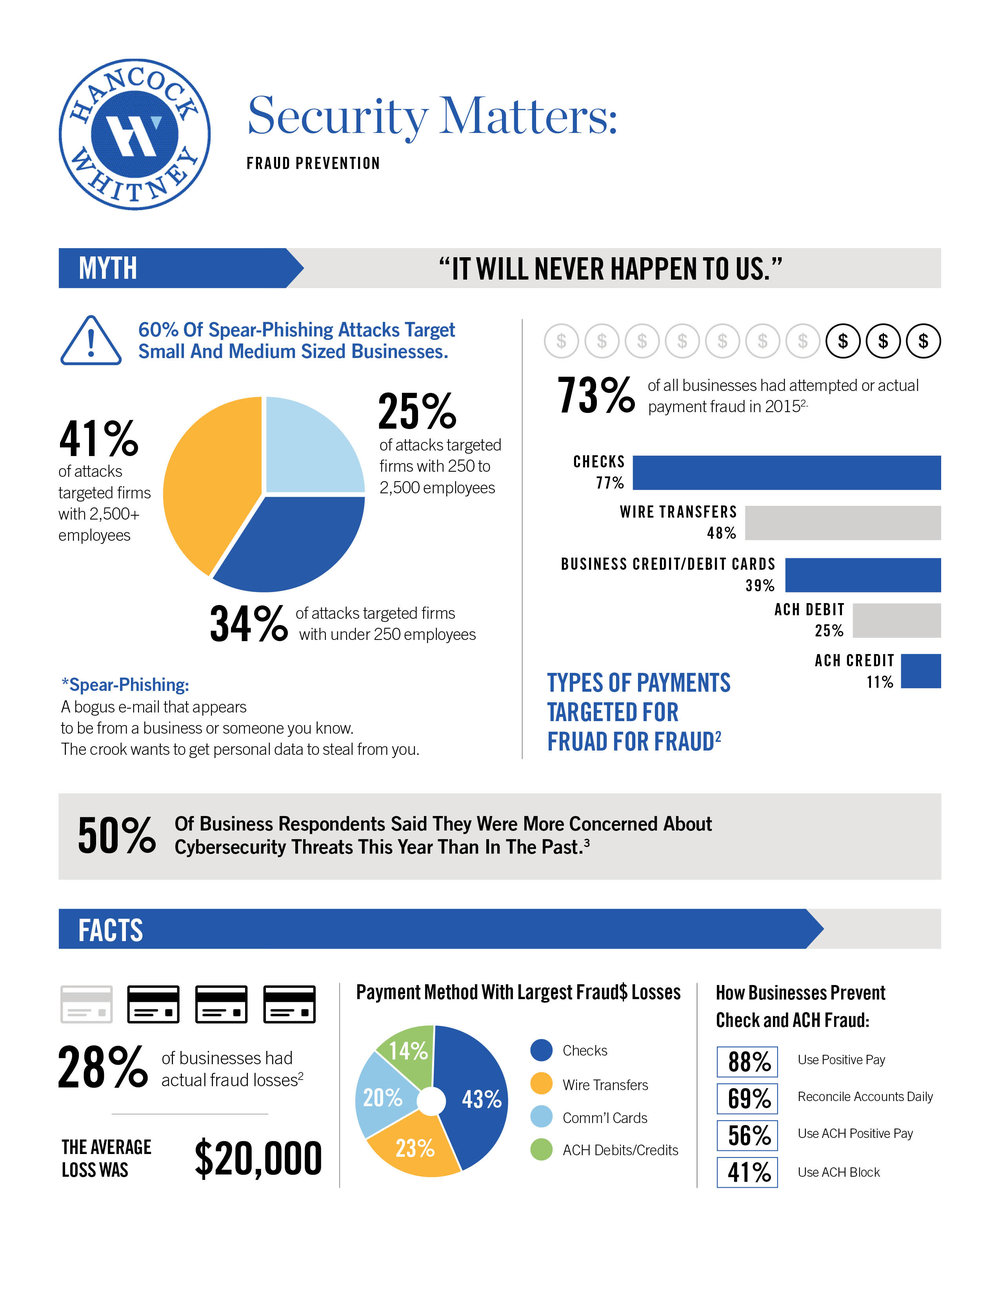 7919-01_HANC_BEXP_TS_Security matters Infographic_r2.jpg